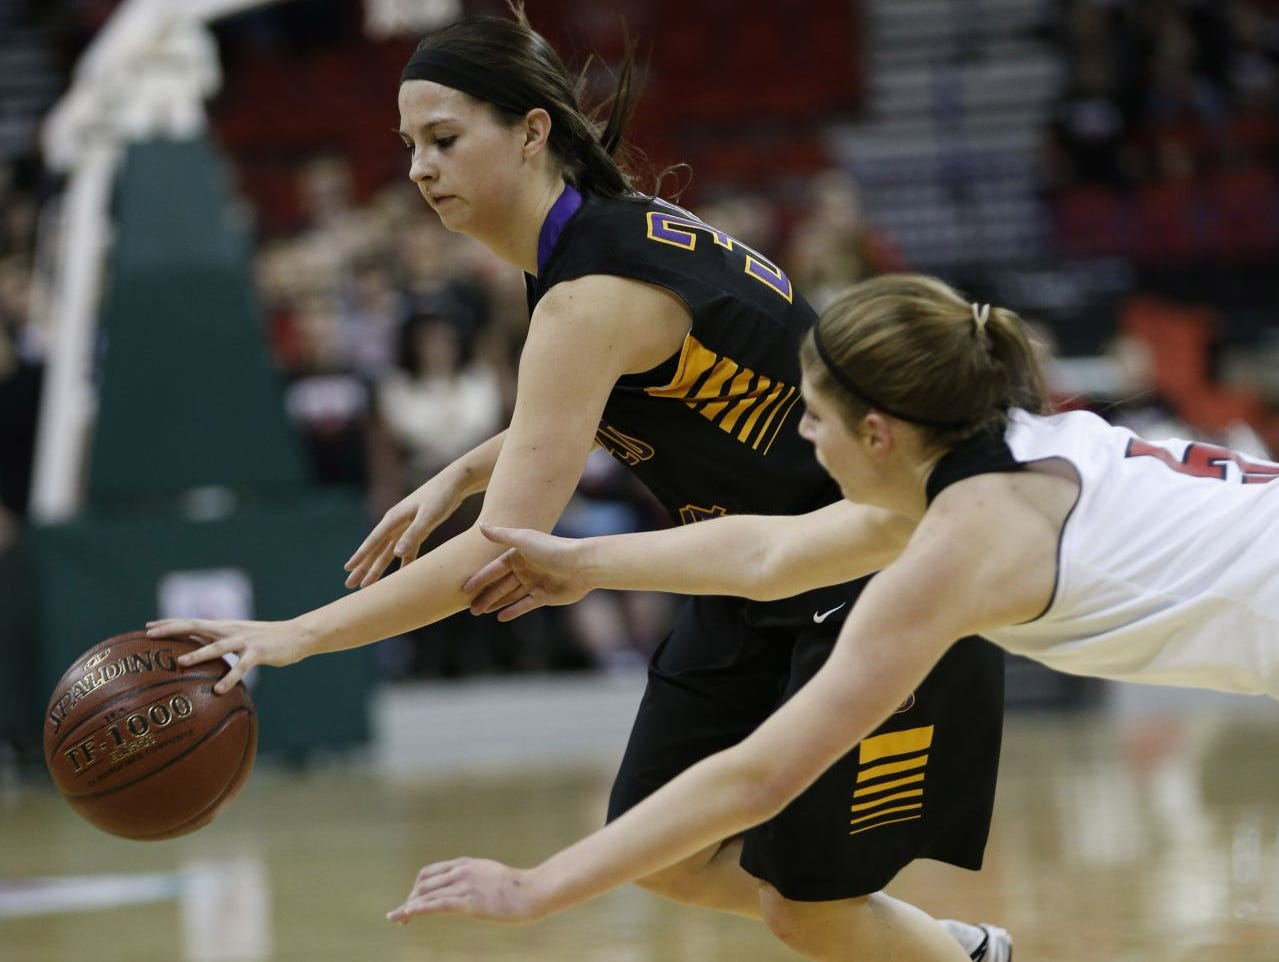 Barneveld's Mattie Schave, left, and South Shore's Morgan Sorenson battle for a loose ball during the first half of their Division 5 semifinals in the WIAA girls' state basketball championships Thursday, March 12, 2015 in Ashwaubenon.